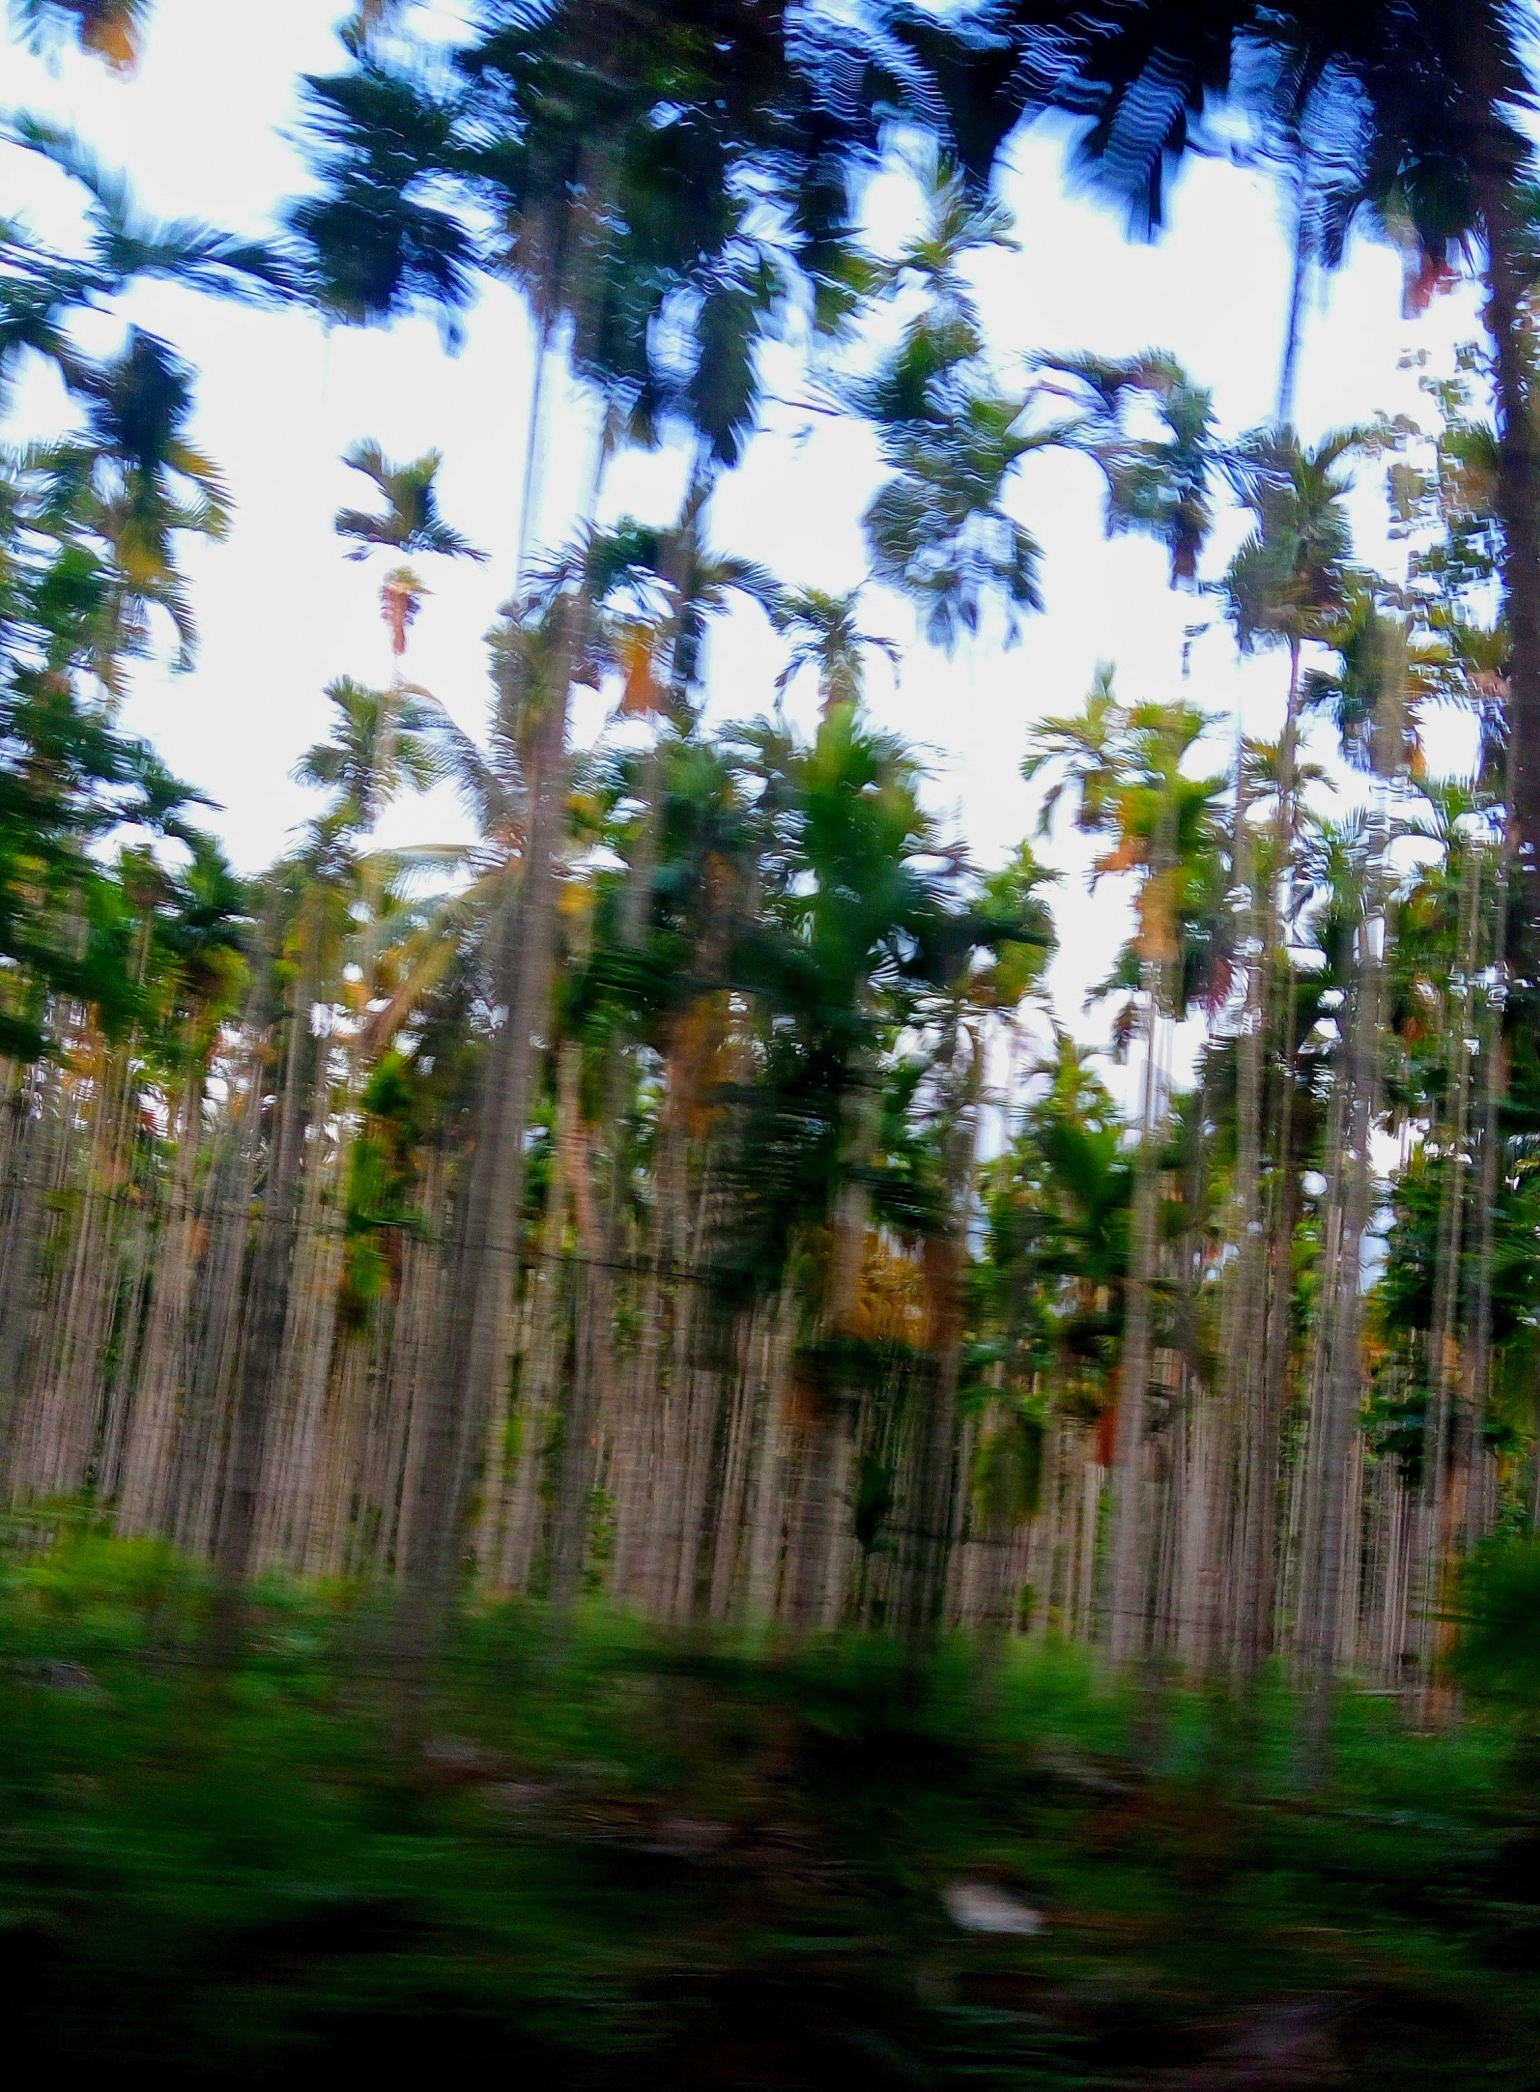 Jaragandi - A freeze of apparent movement of trees while driving